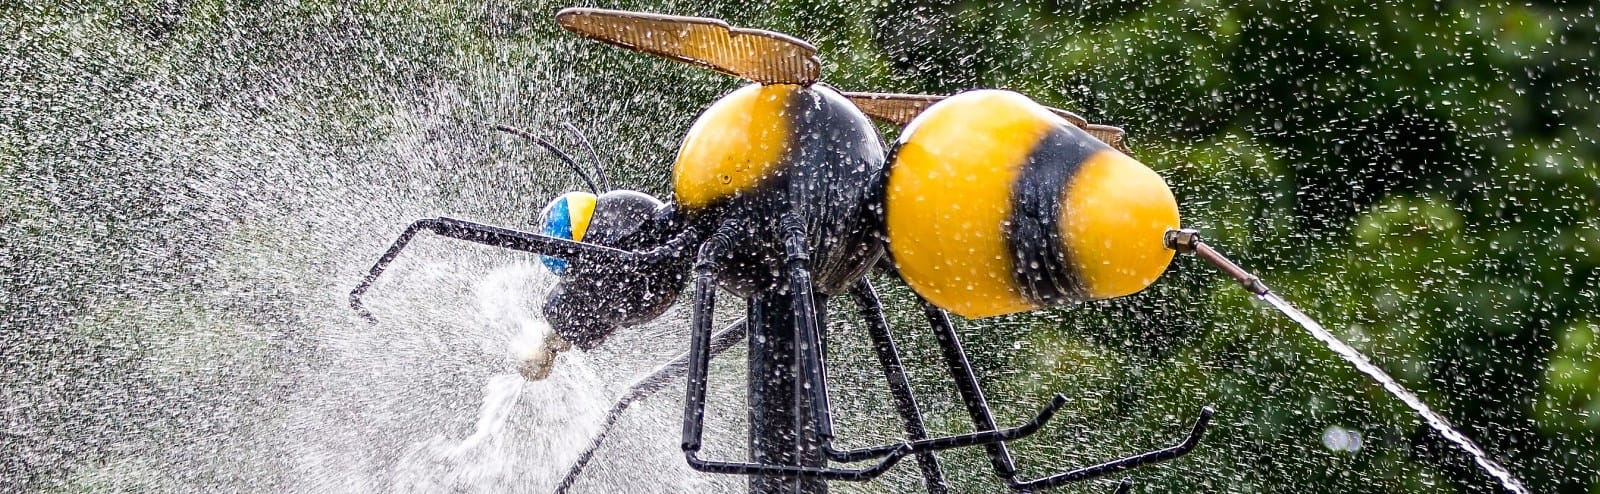 Bumble Bee Spraying Water